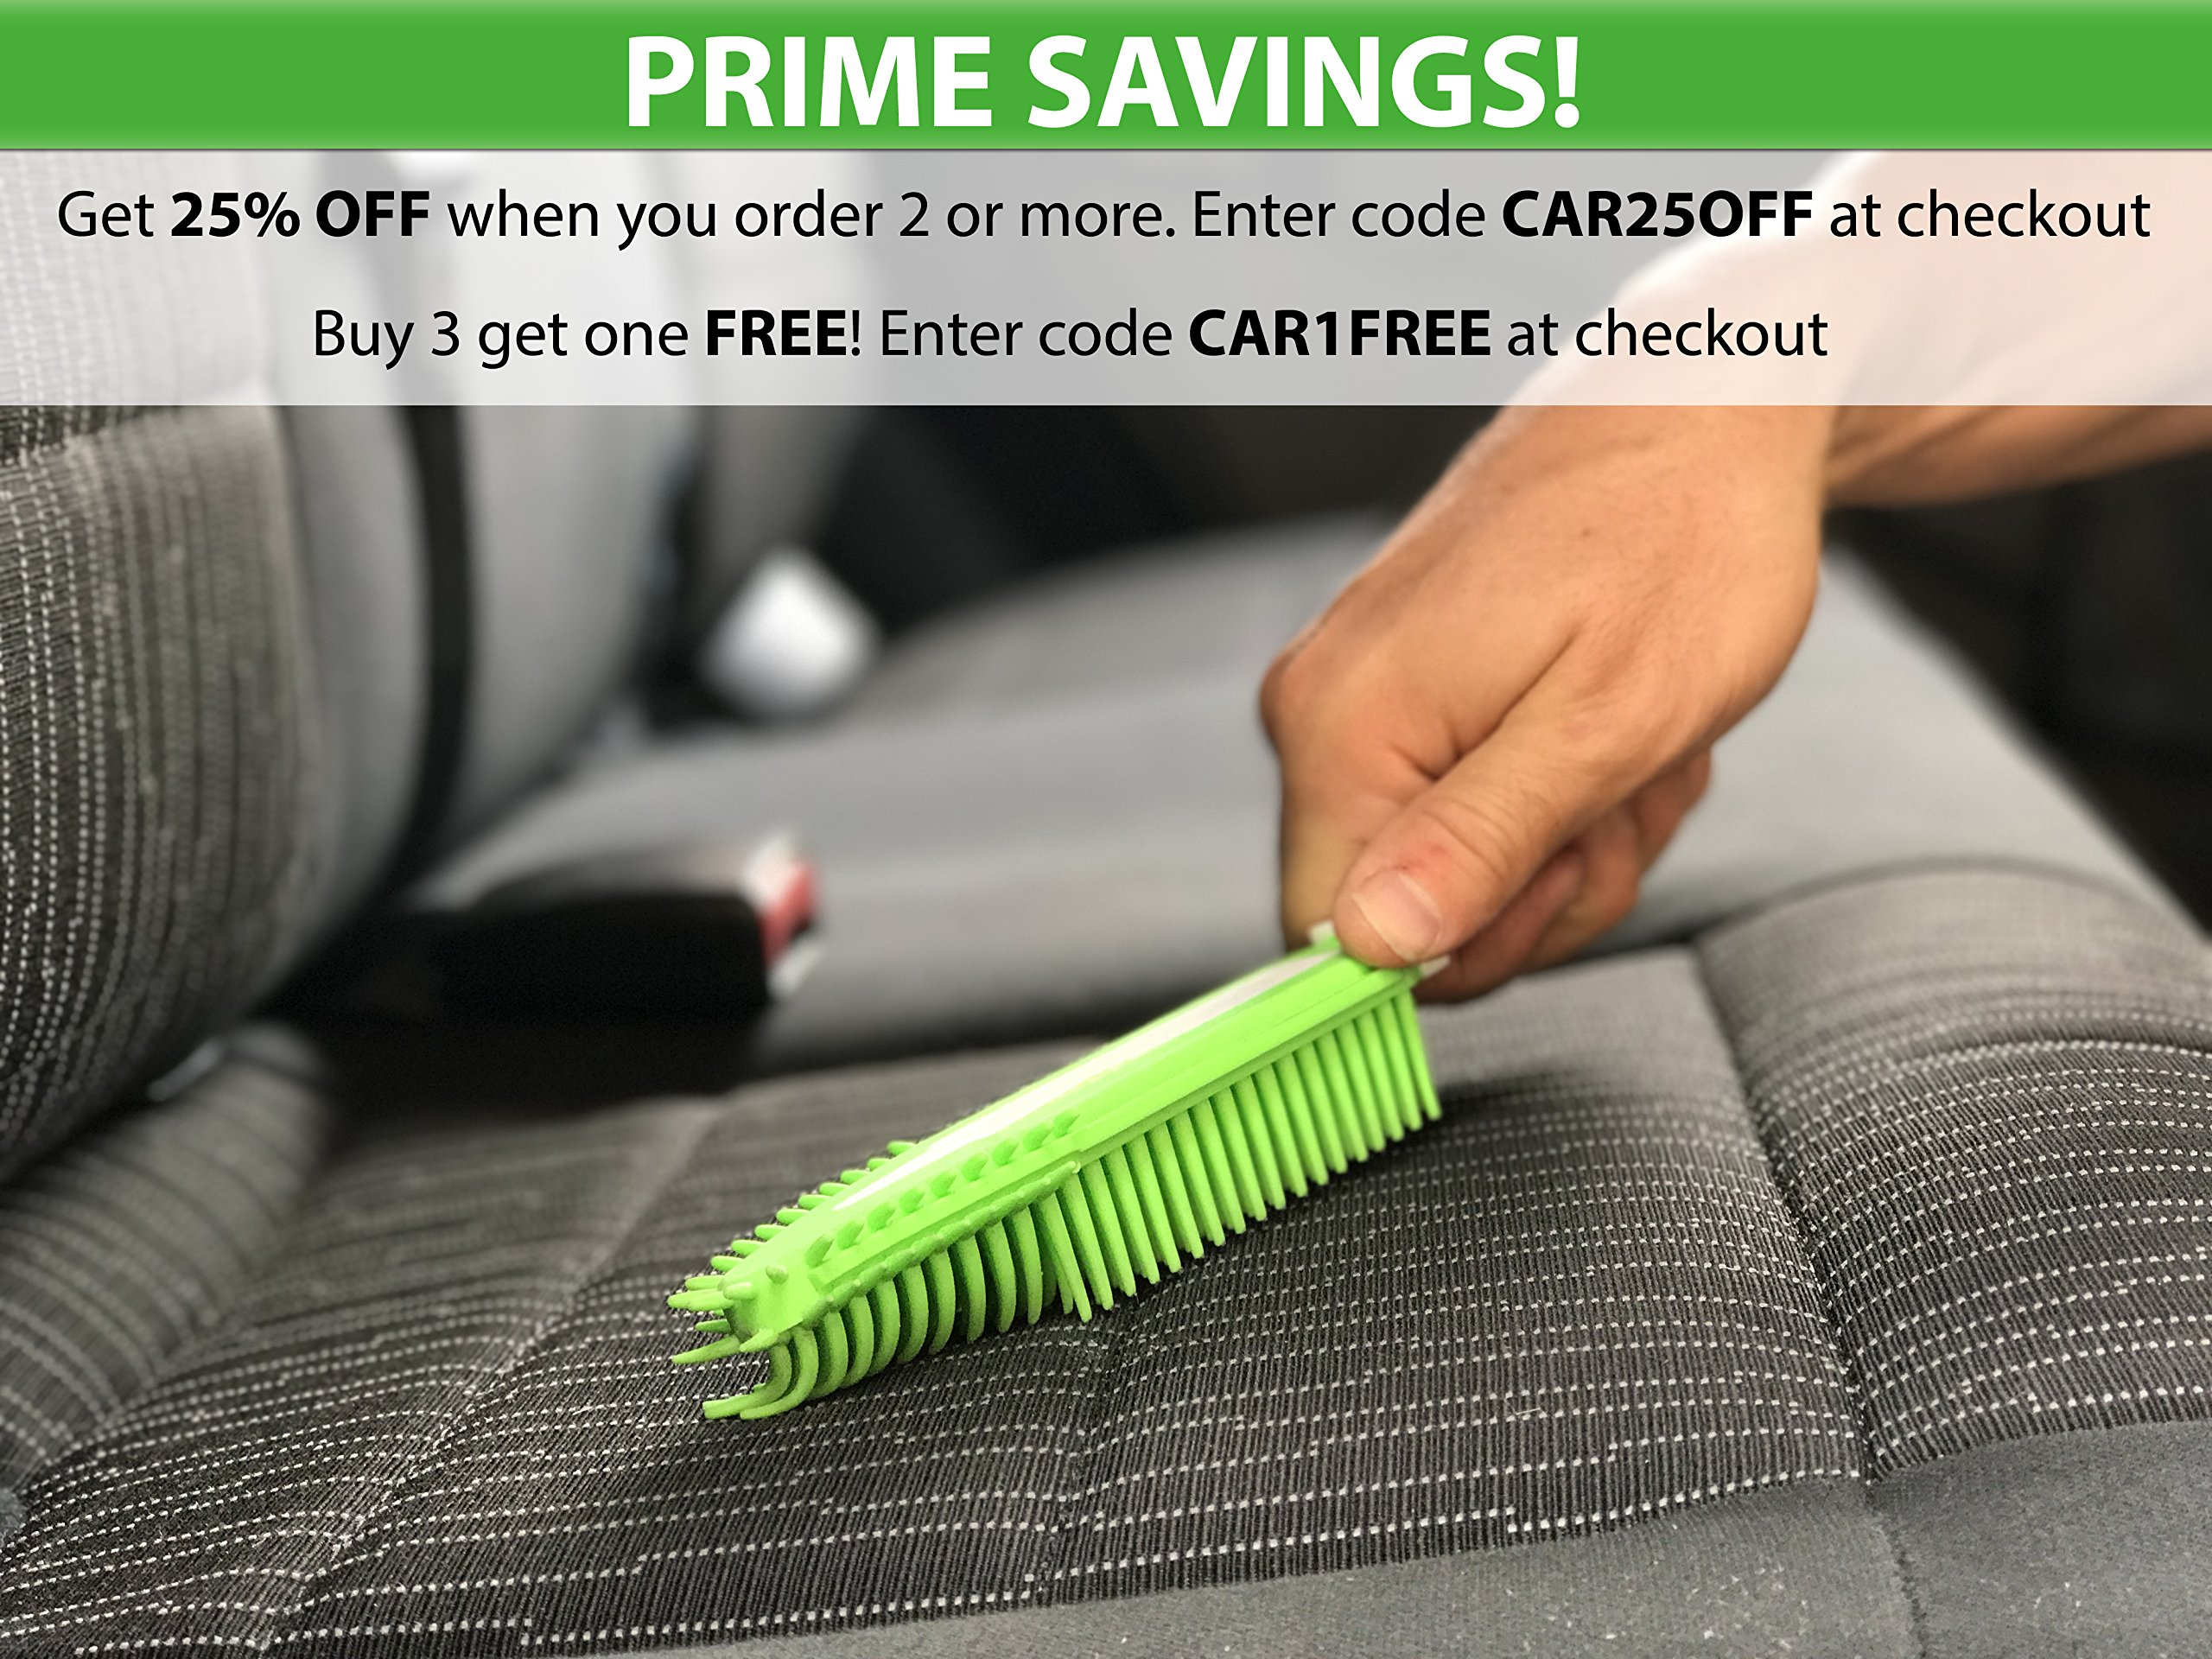 Best Car & Auto Detailing Brush for Pet Hair Removal and Car Upholstery Cleaner - Best Pet Hair Remover for Dog And Cat Hair - Great On Furniture (Bedding, Carpets, Blankets) – Use As A Lint Remover f by Dasksha (Image #2)